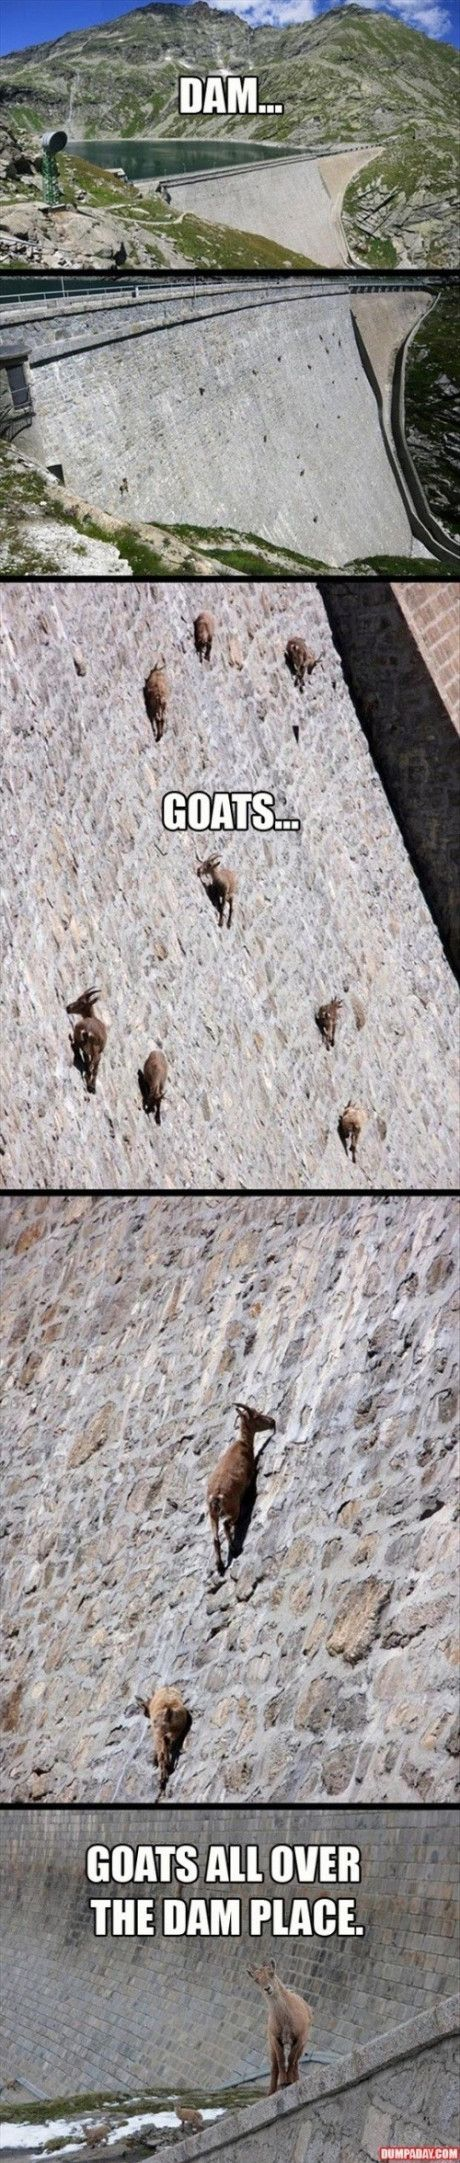 The animals in the photographs are Alpine Ibex, a wild goat. The structure shown in the images is the Cingino Dam in Italy.